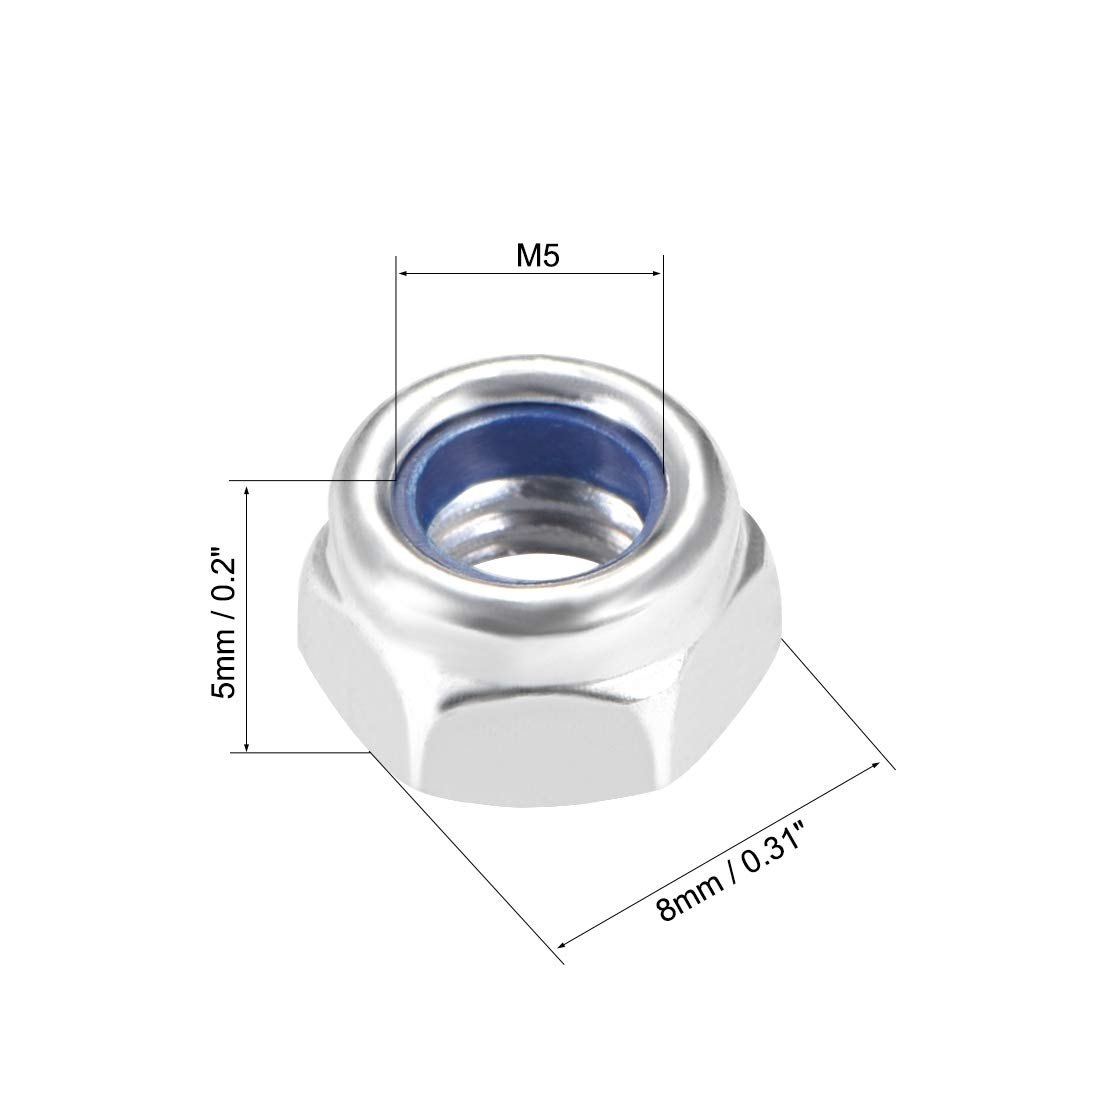 Carbon Steel Black Zinc Plated uxcell M4 x 0.7mm Nylon Insert Hex Lock Nuts Pack of 50